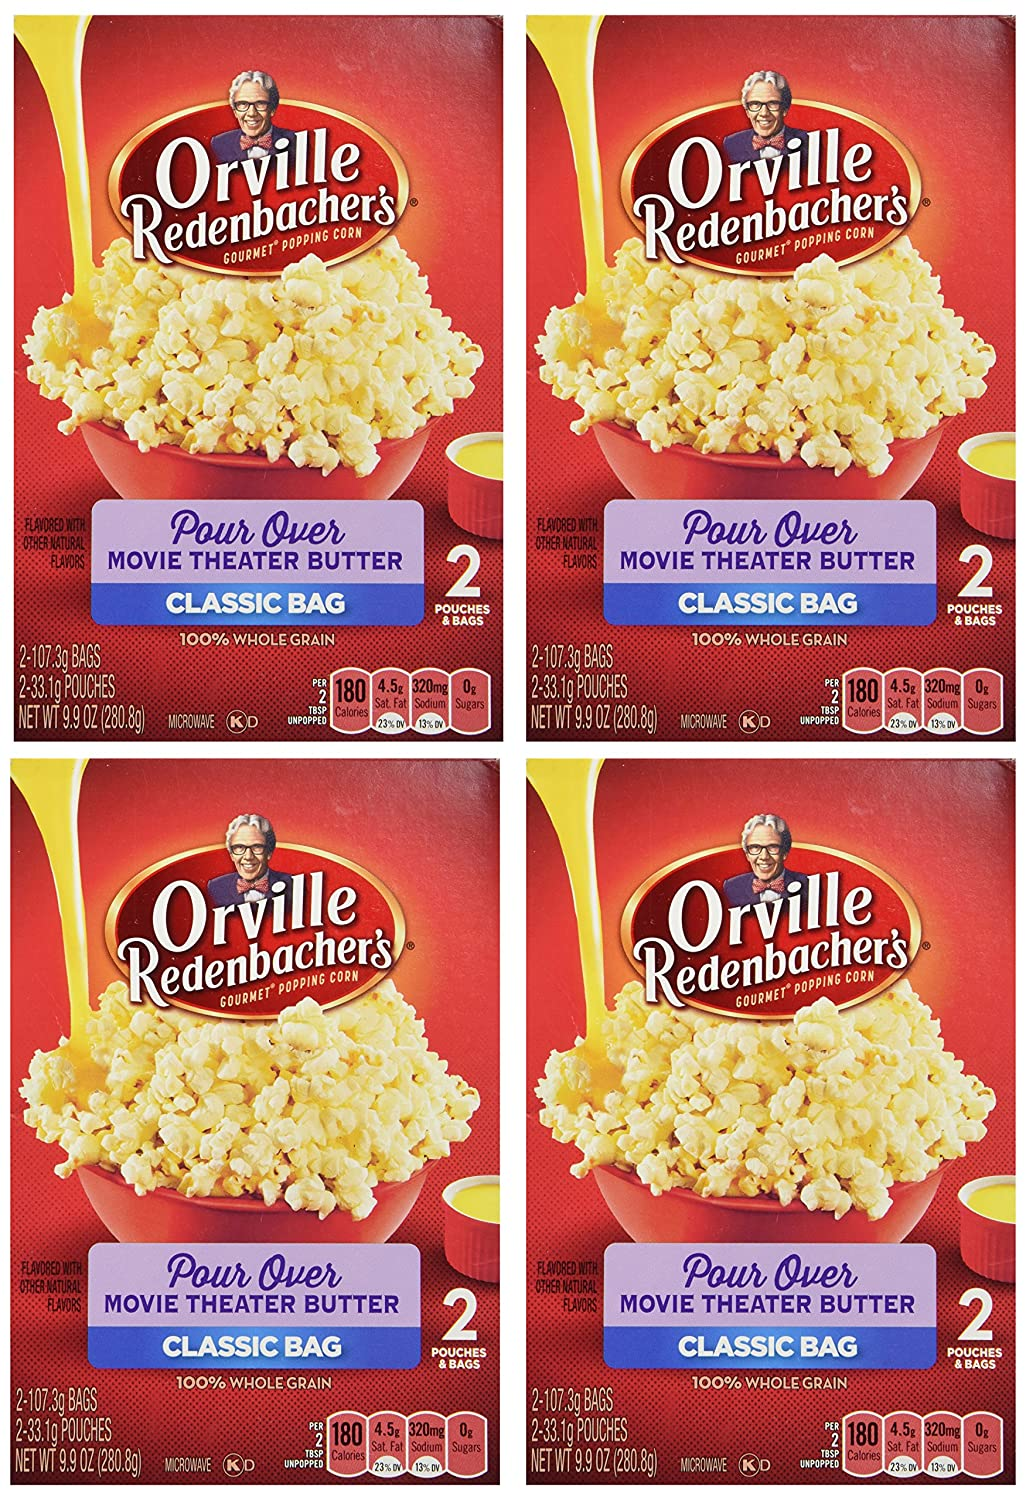 Orville Redenbacher Pour Over Movie Butter Max 79% OFF Max 83% OFF Popcorn 9.9 Theater